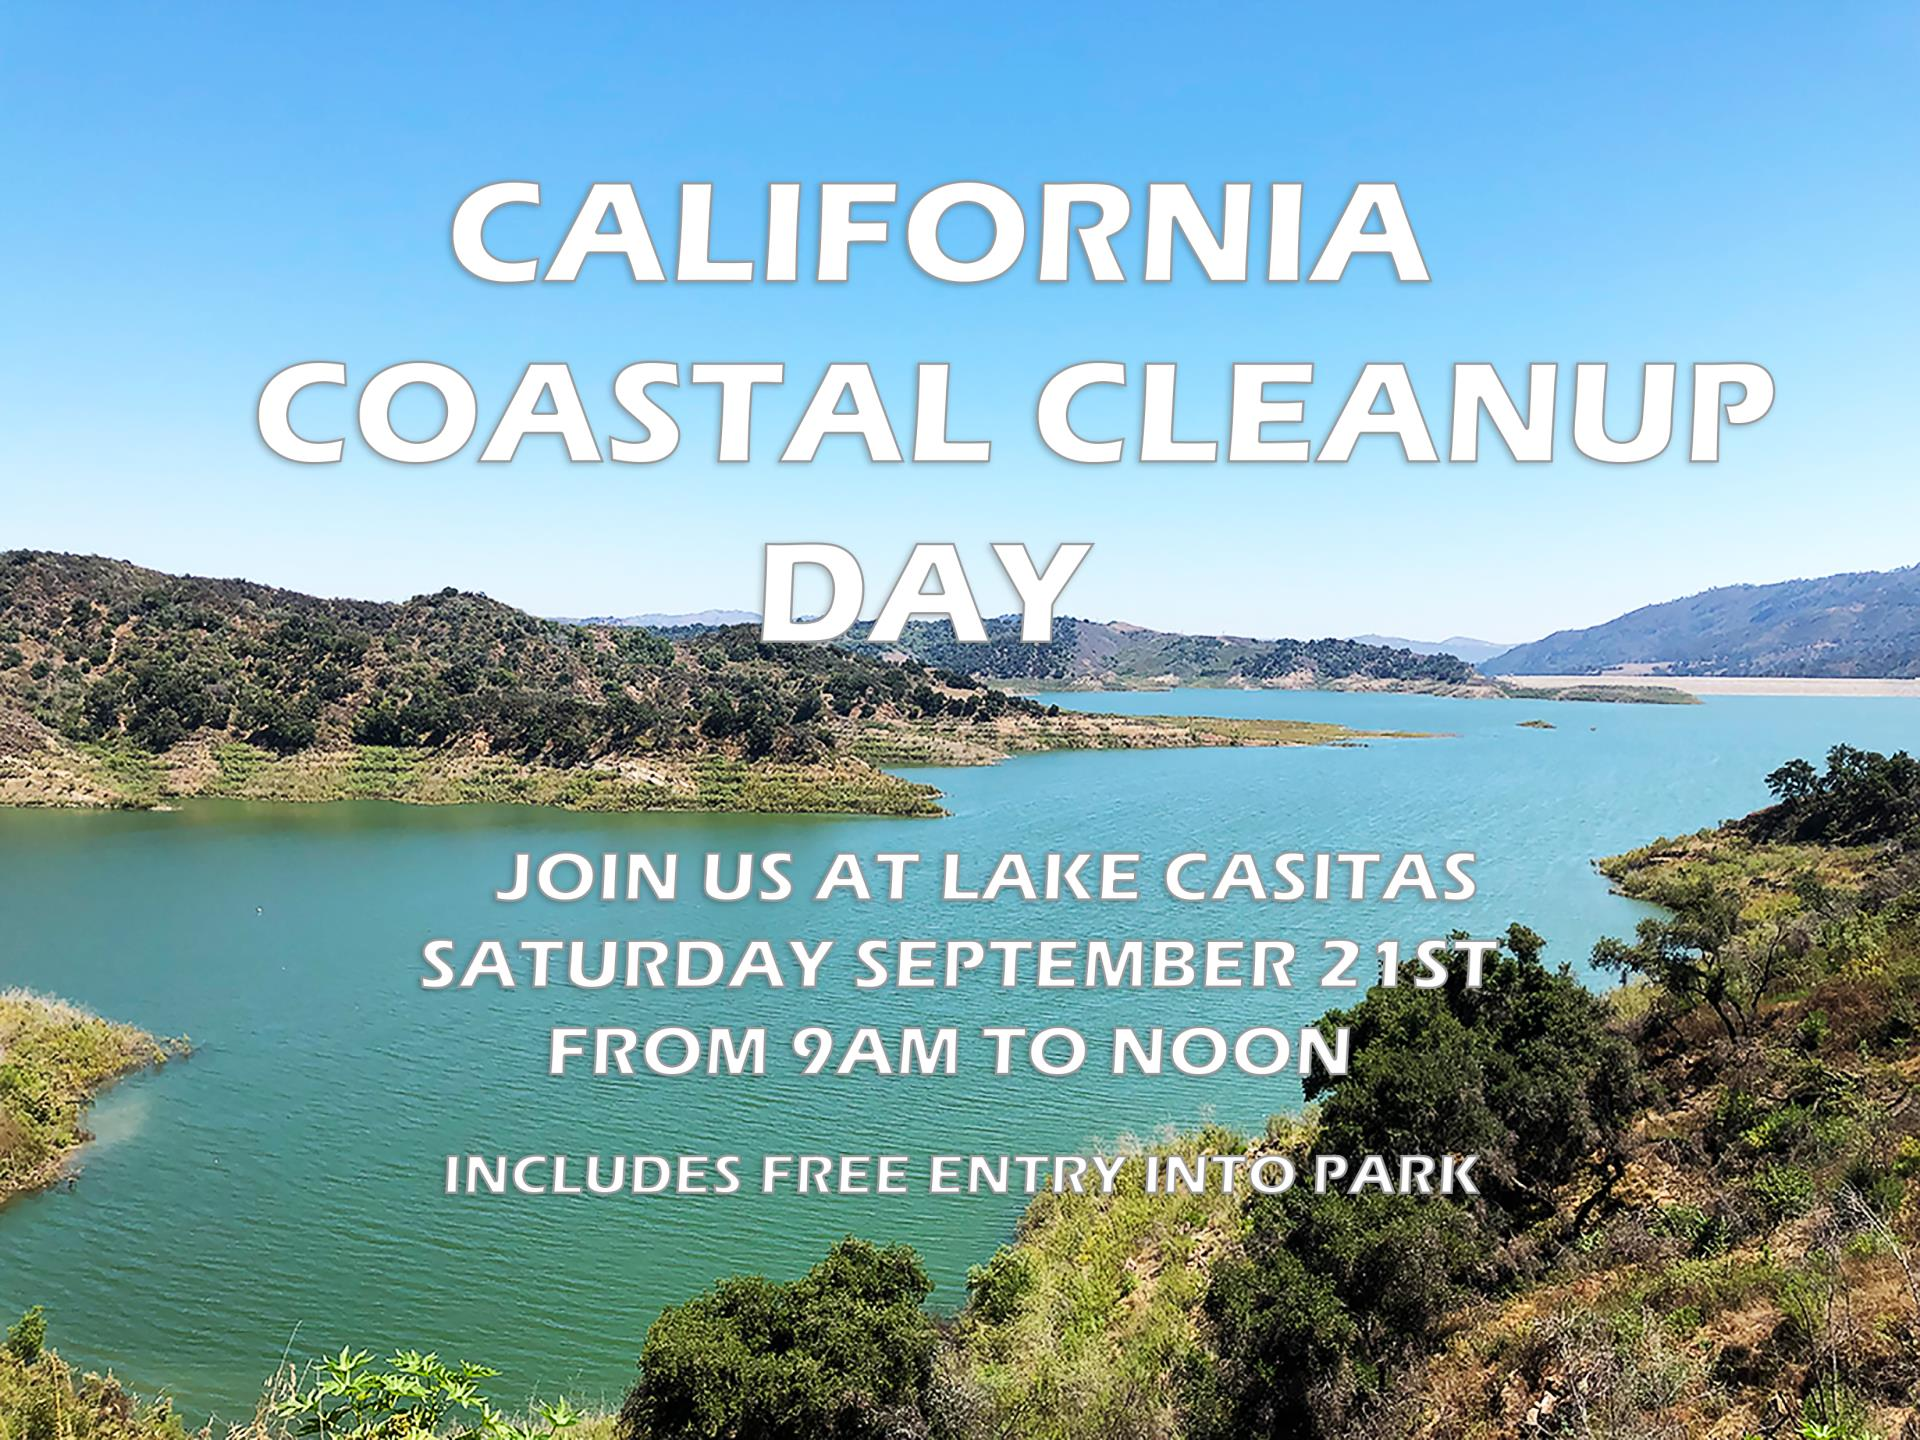 COASTAL CLEAN UP DAY